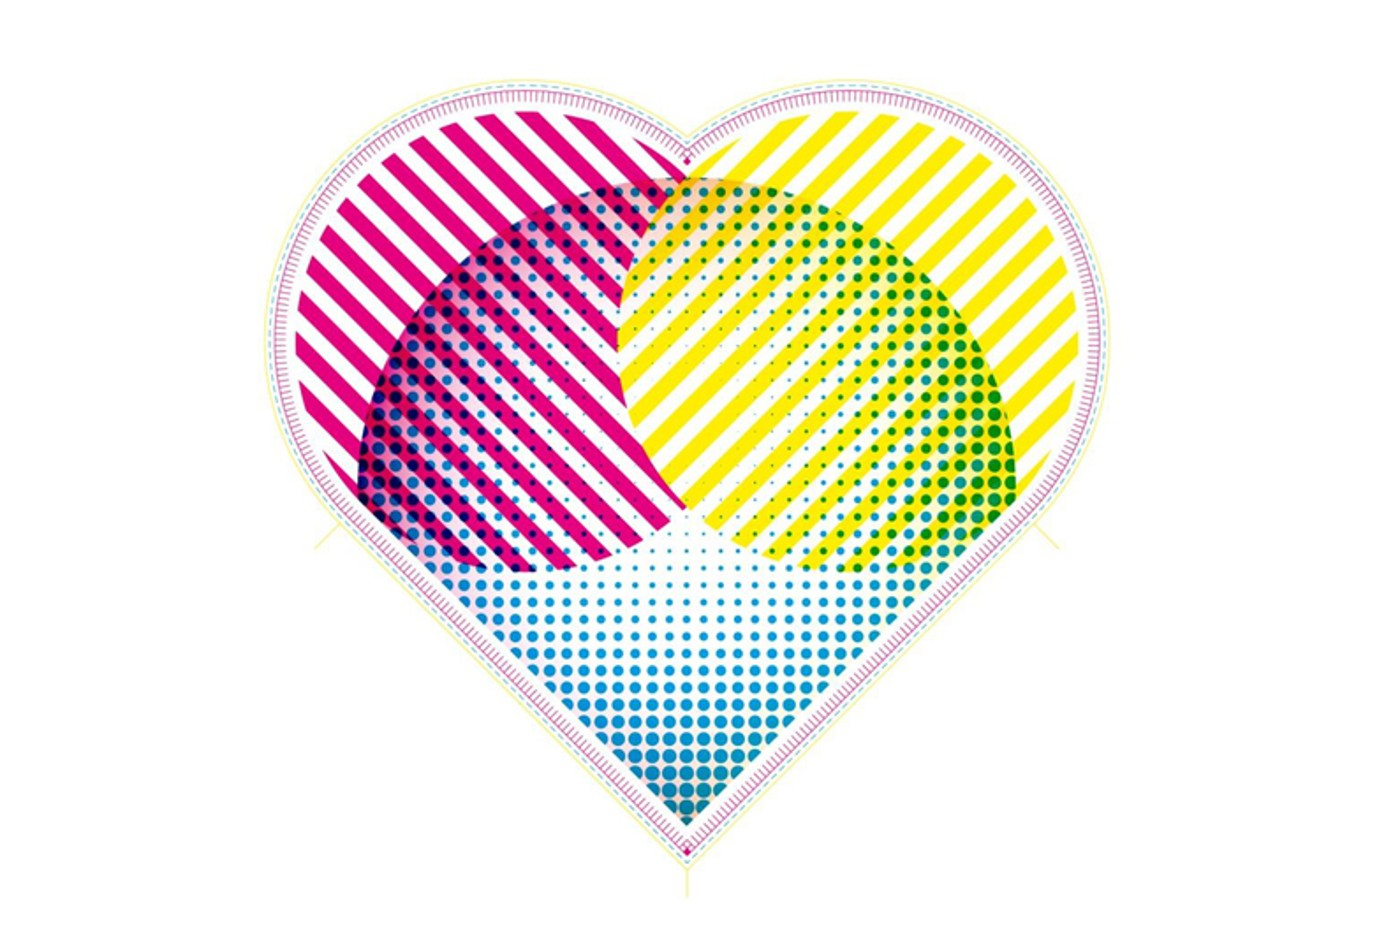 Heart_of_Printing